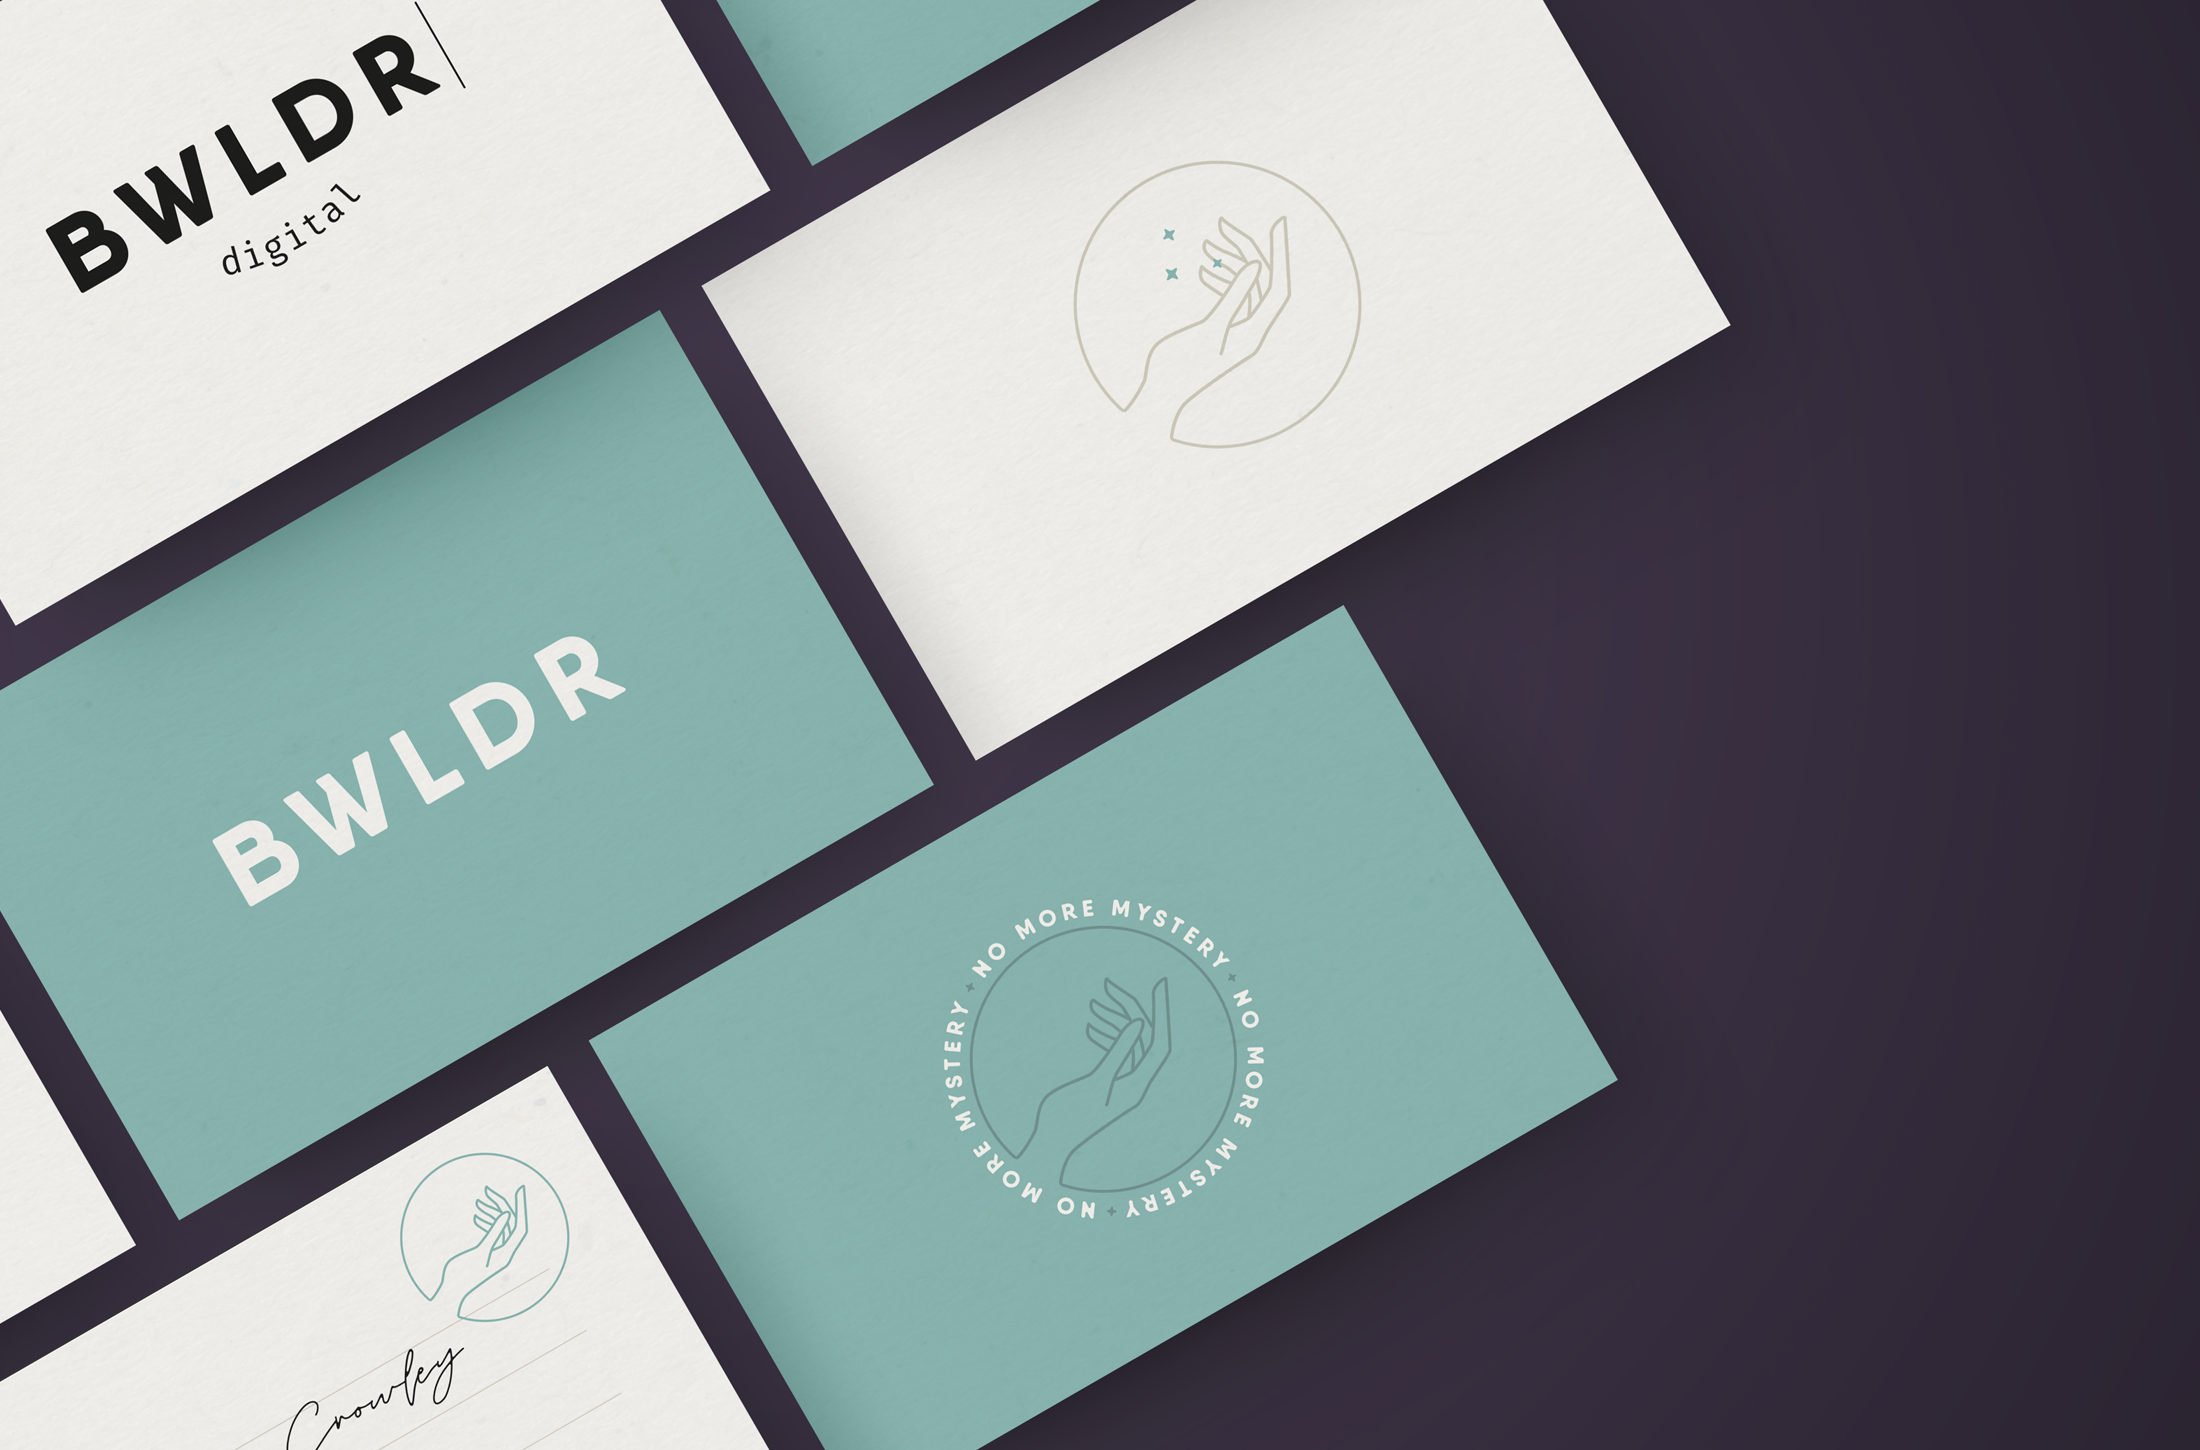 Business card design for Bwldr Digital, a marketing agency that focuses on helping small businesses in the local community and donates a percentage of proceeds to charity - designed by Wiltshire-based graphic designer, Kaye Huett